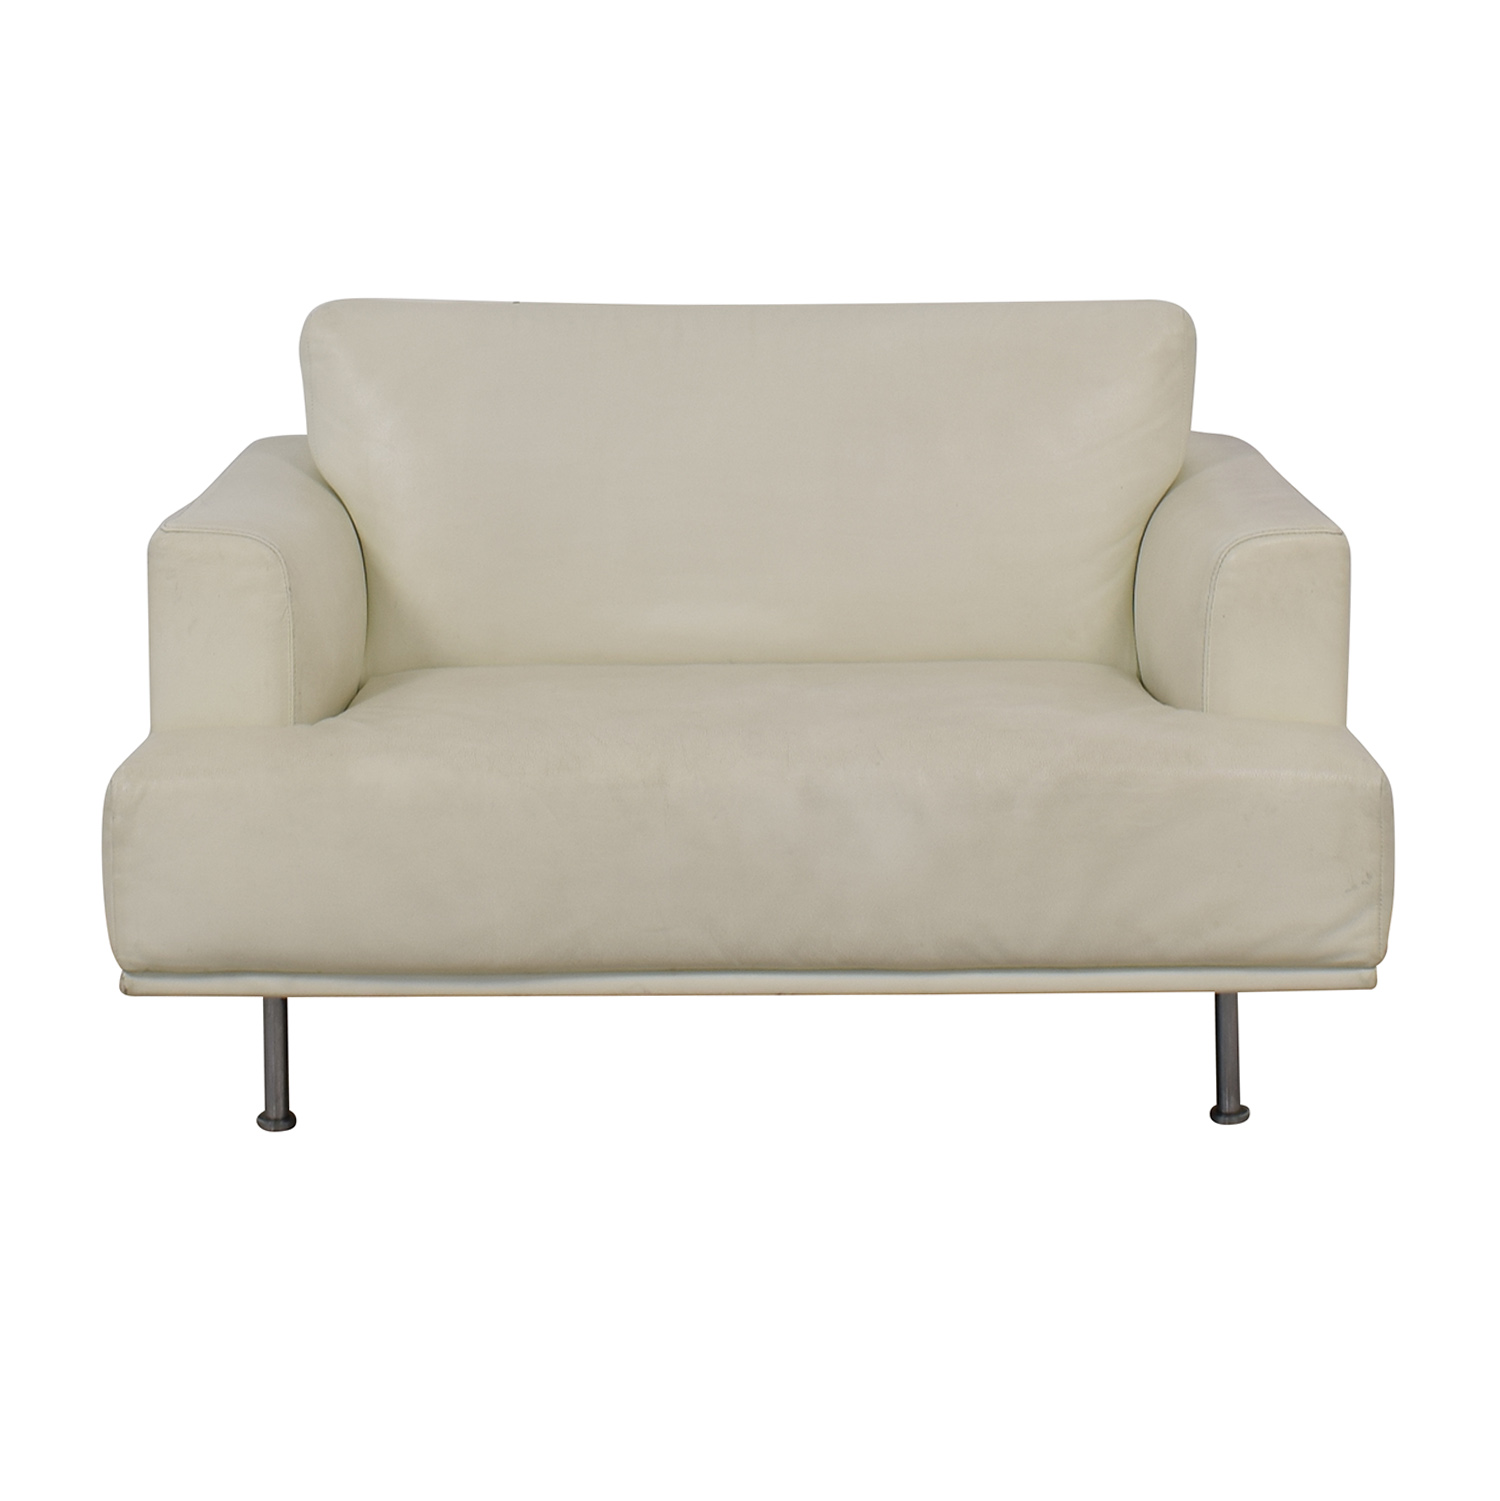 Maralunga Sessel Cassina Sofa Bed Baci Living Room